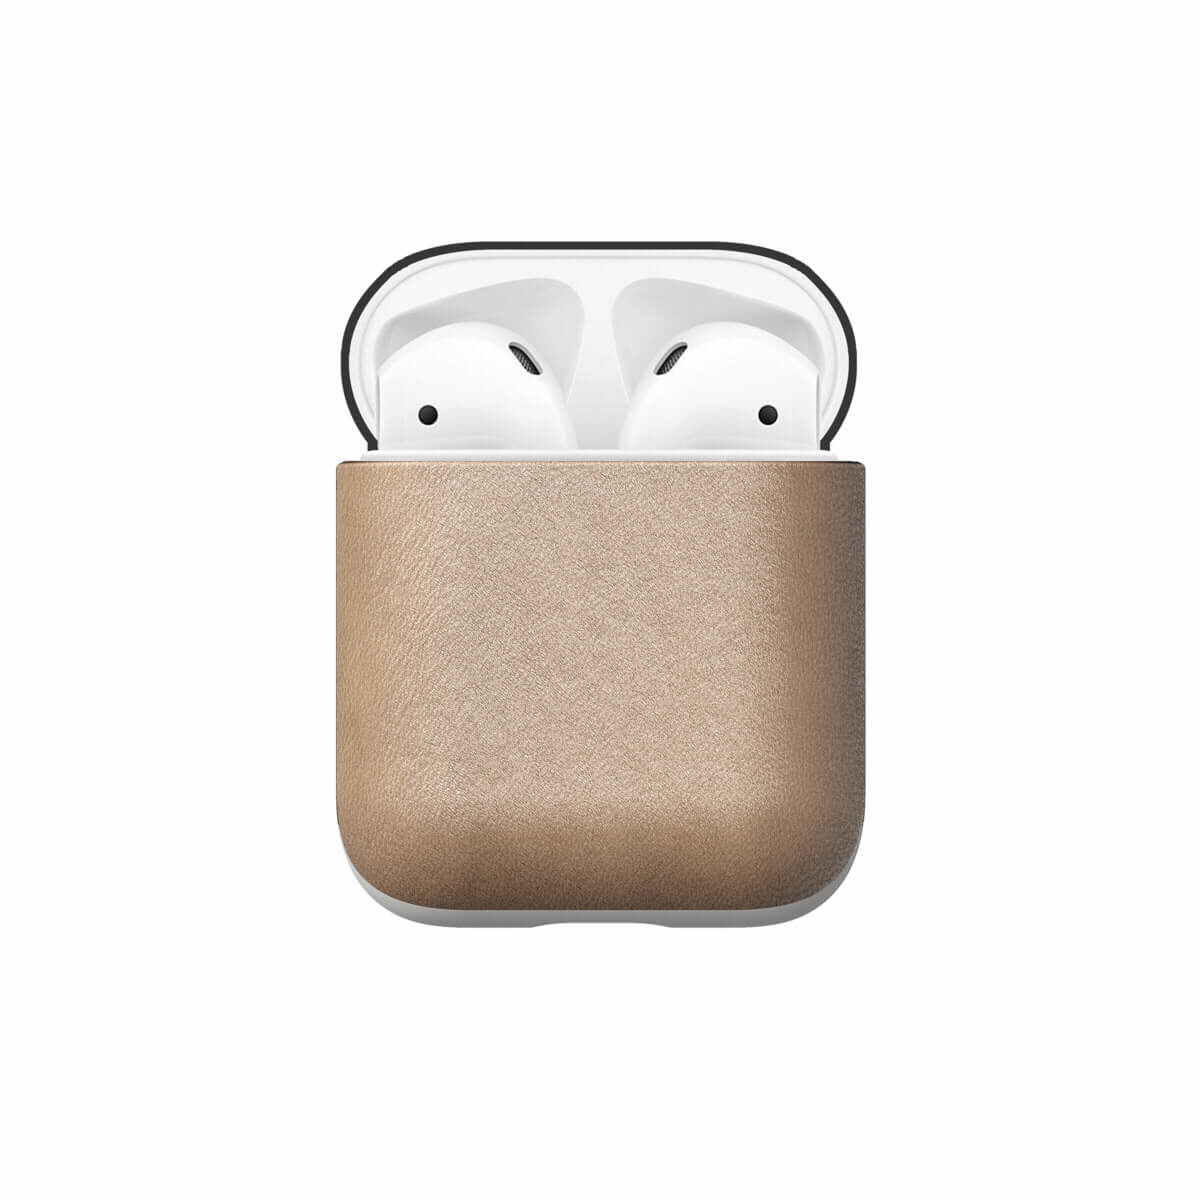 Nomad Leather Case for Apple Airpods (natural leather)